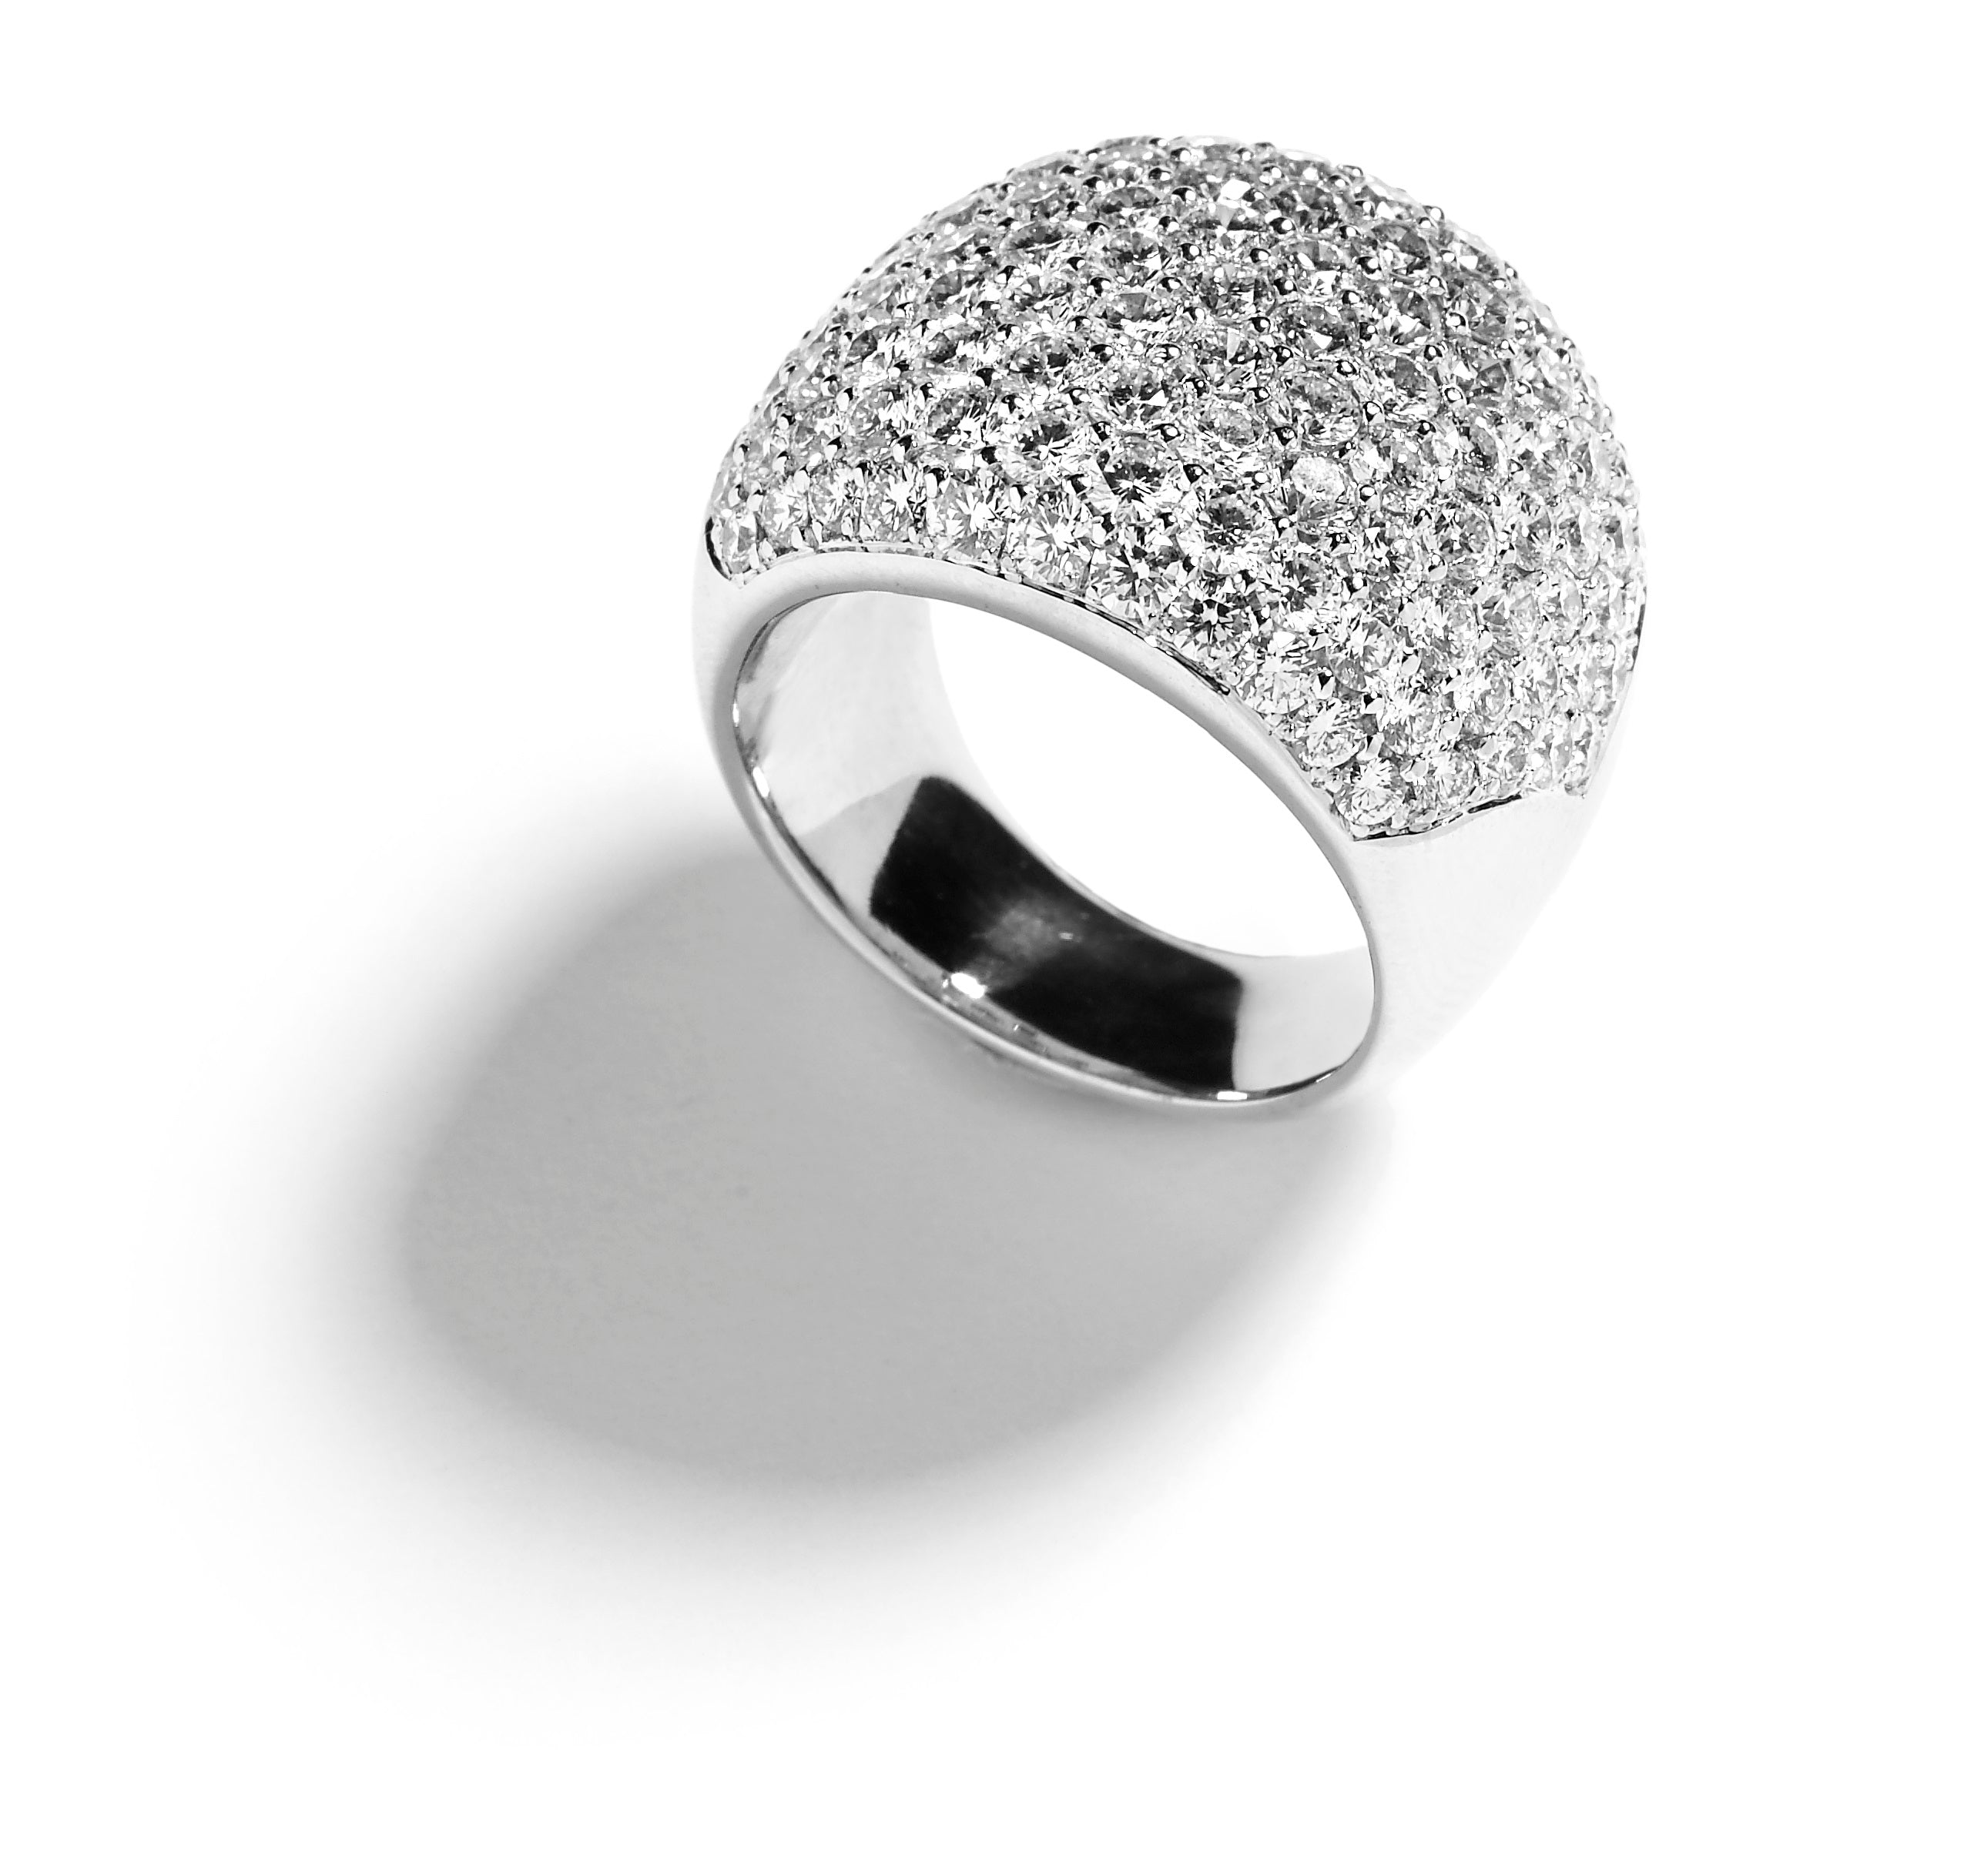 Pavé diamantring med 5,78 ct. brillanter